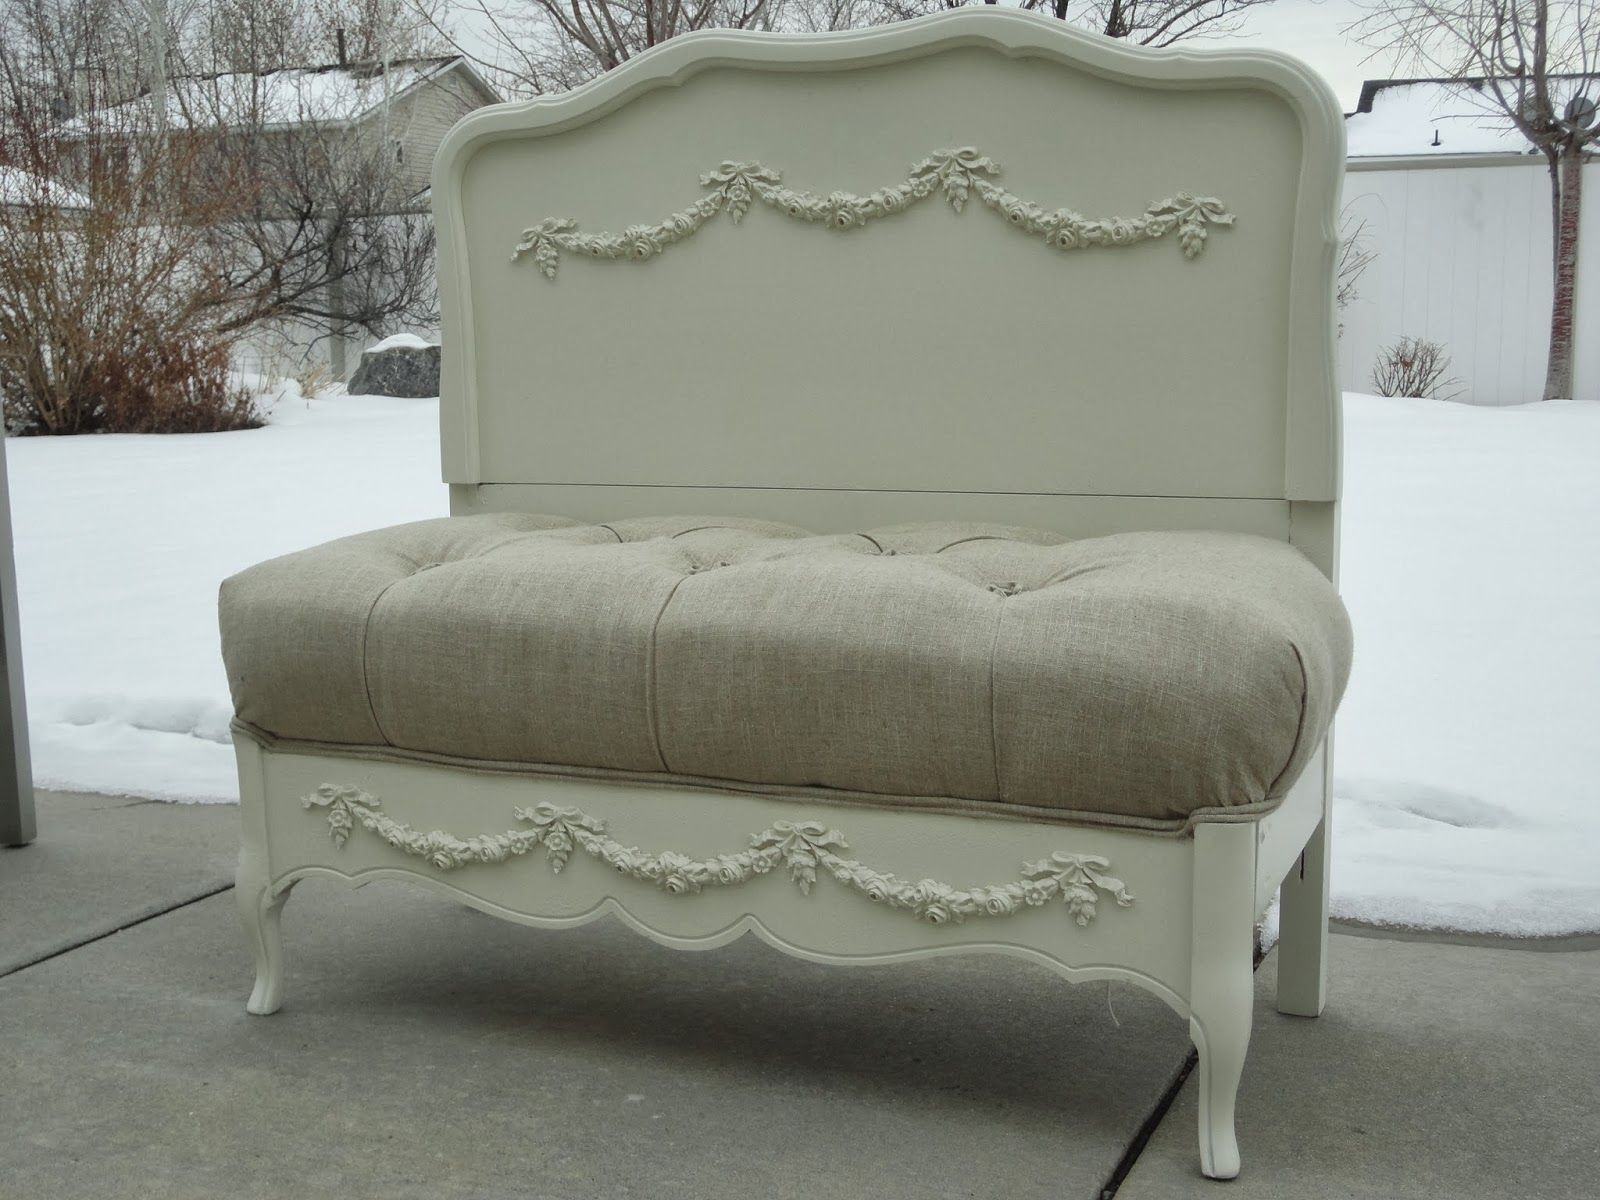 Prime Stunning Settee Bench Made From A Twin Bed Wood Was Short Links Chair Design For Home Short Linksinfo